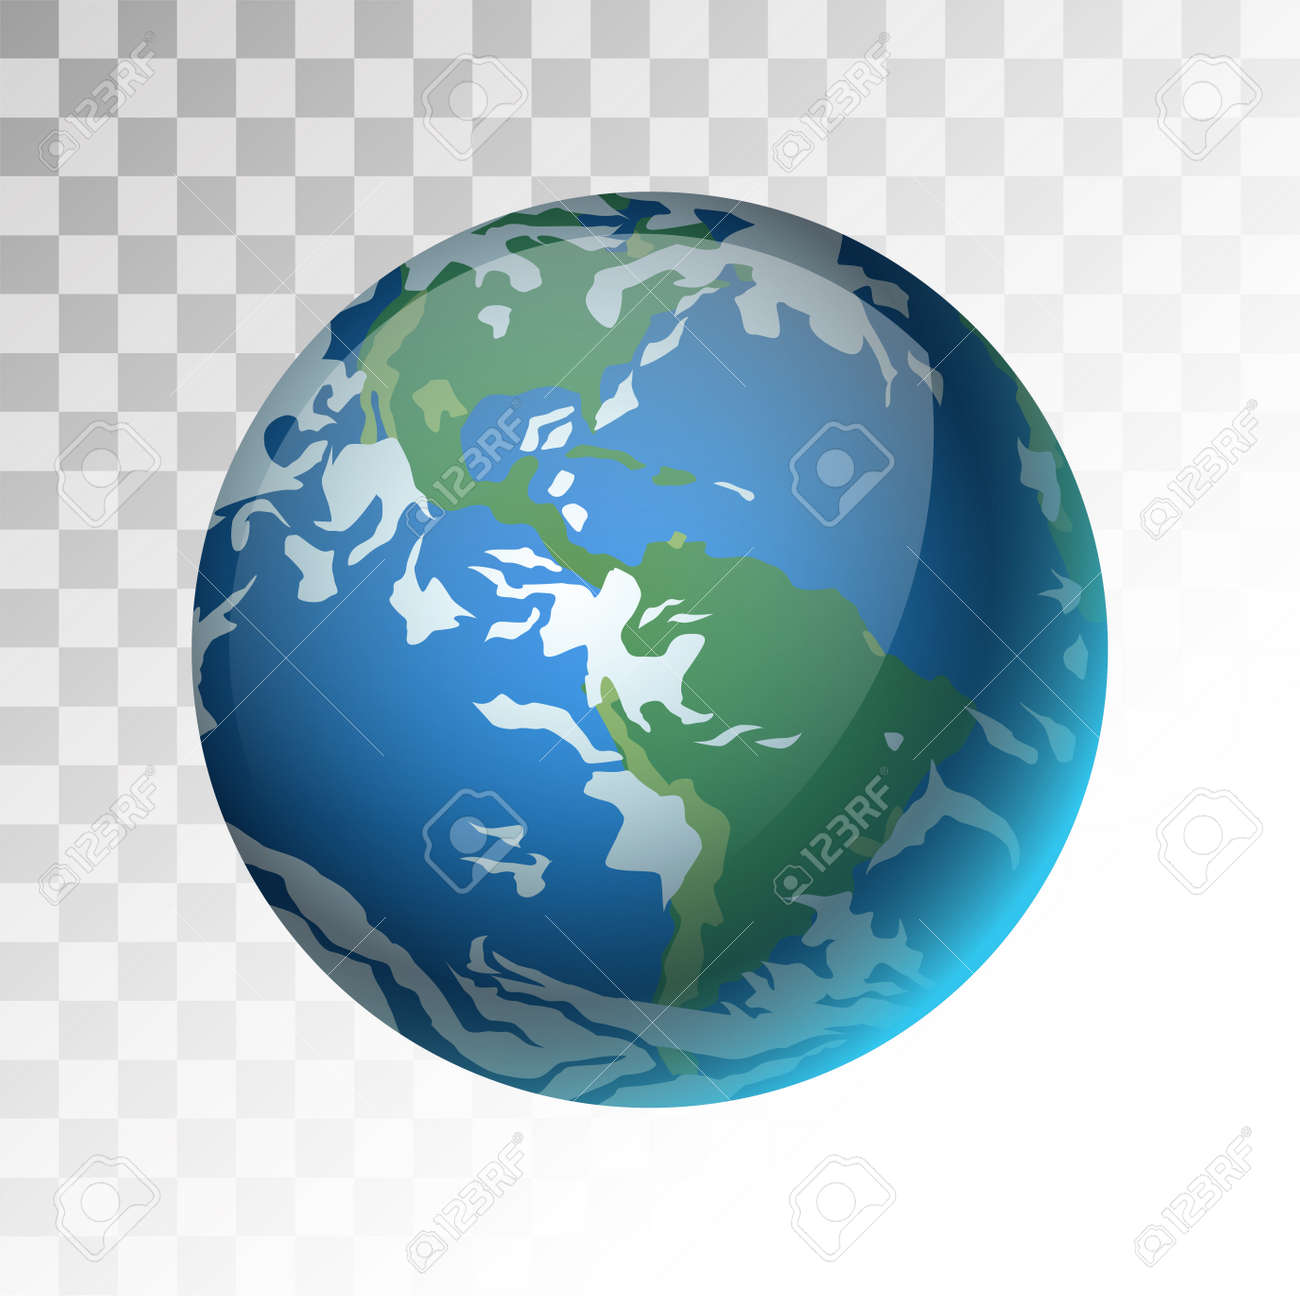 Earth Planet 3d Vector Illustration  Globe Earth Texture Map     Earth planet 3d vector illustration  Globe Earth texture map  Globe vector  Earth view from